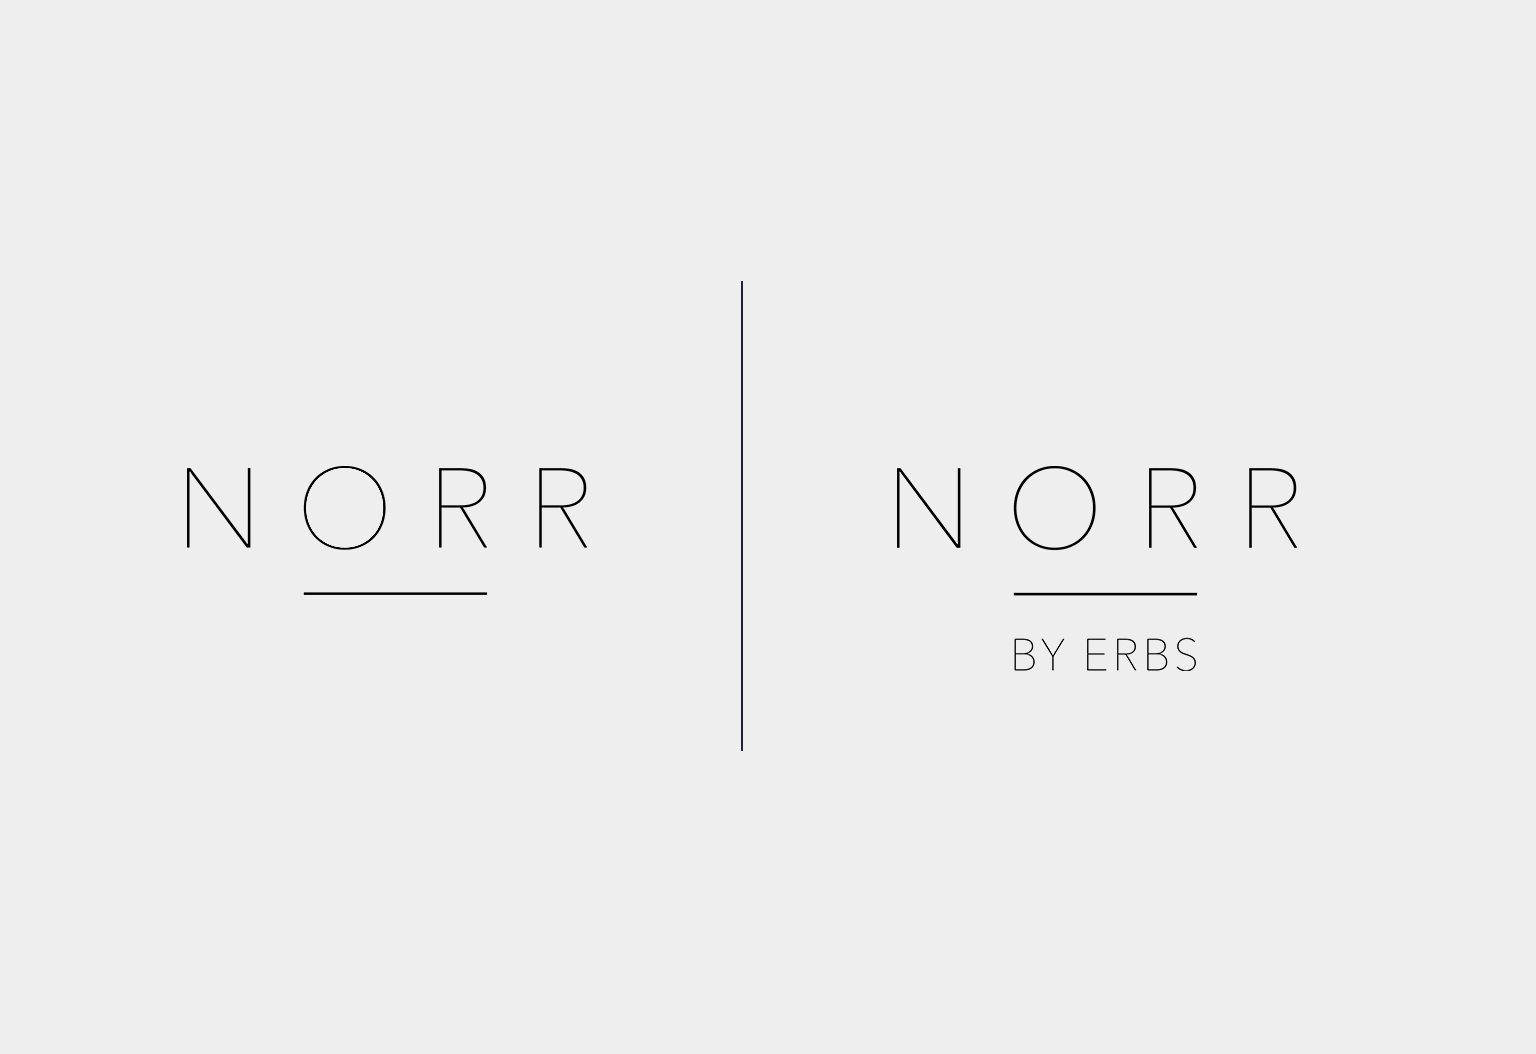 norr2